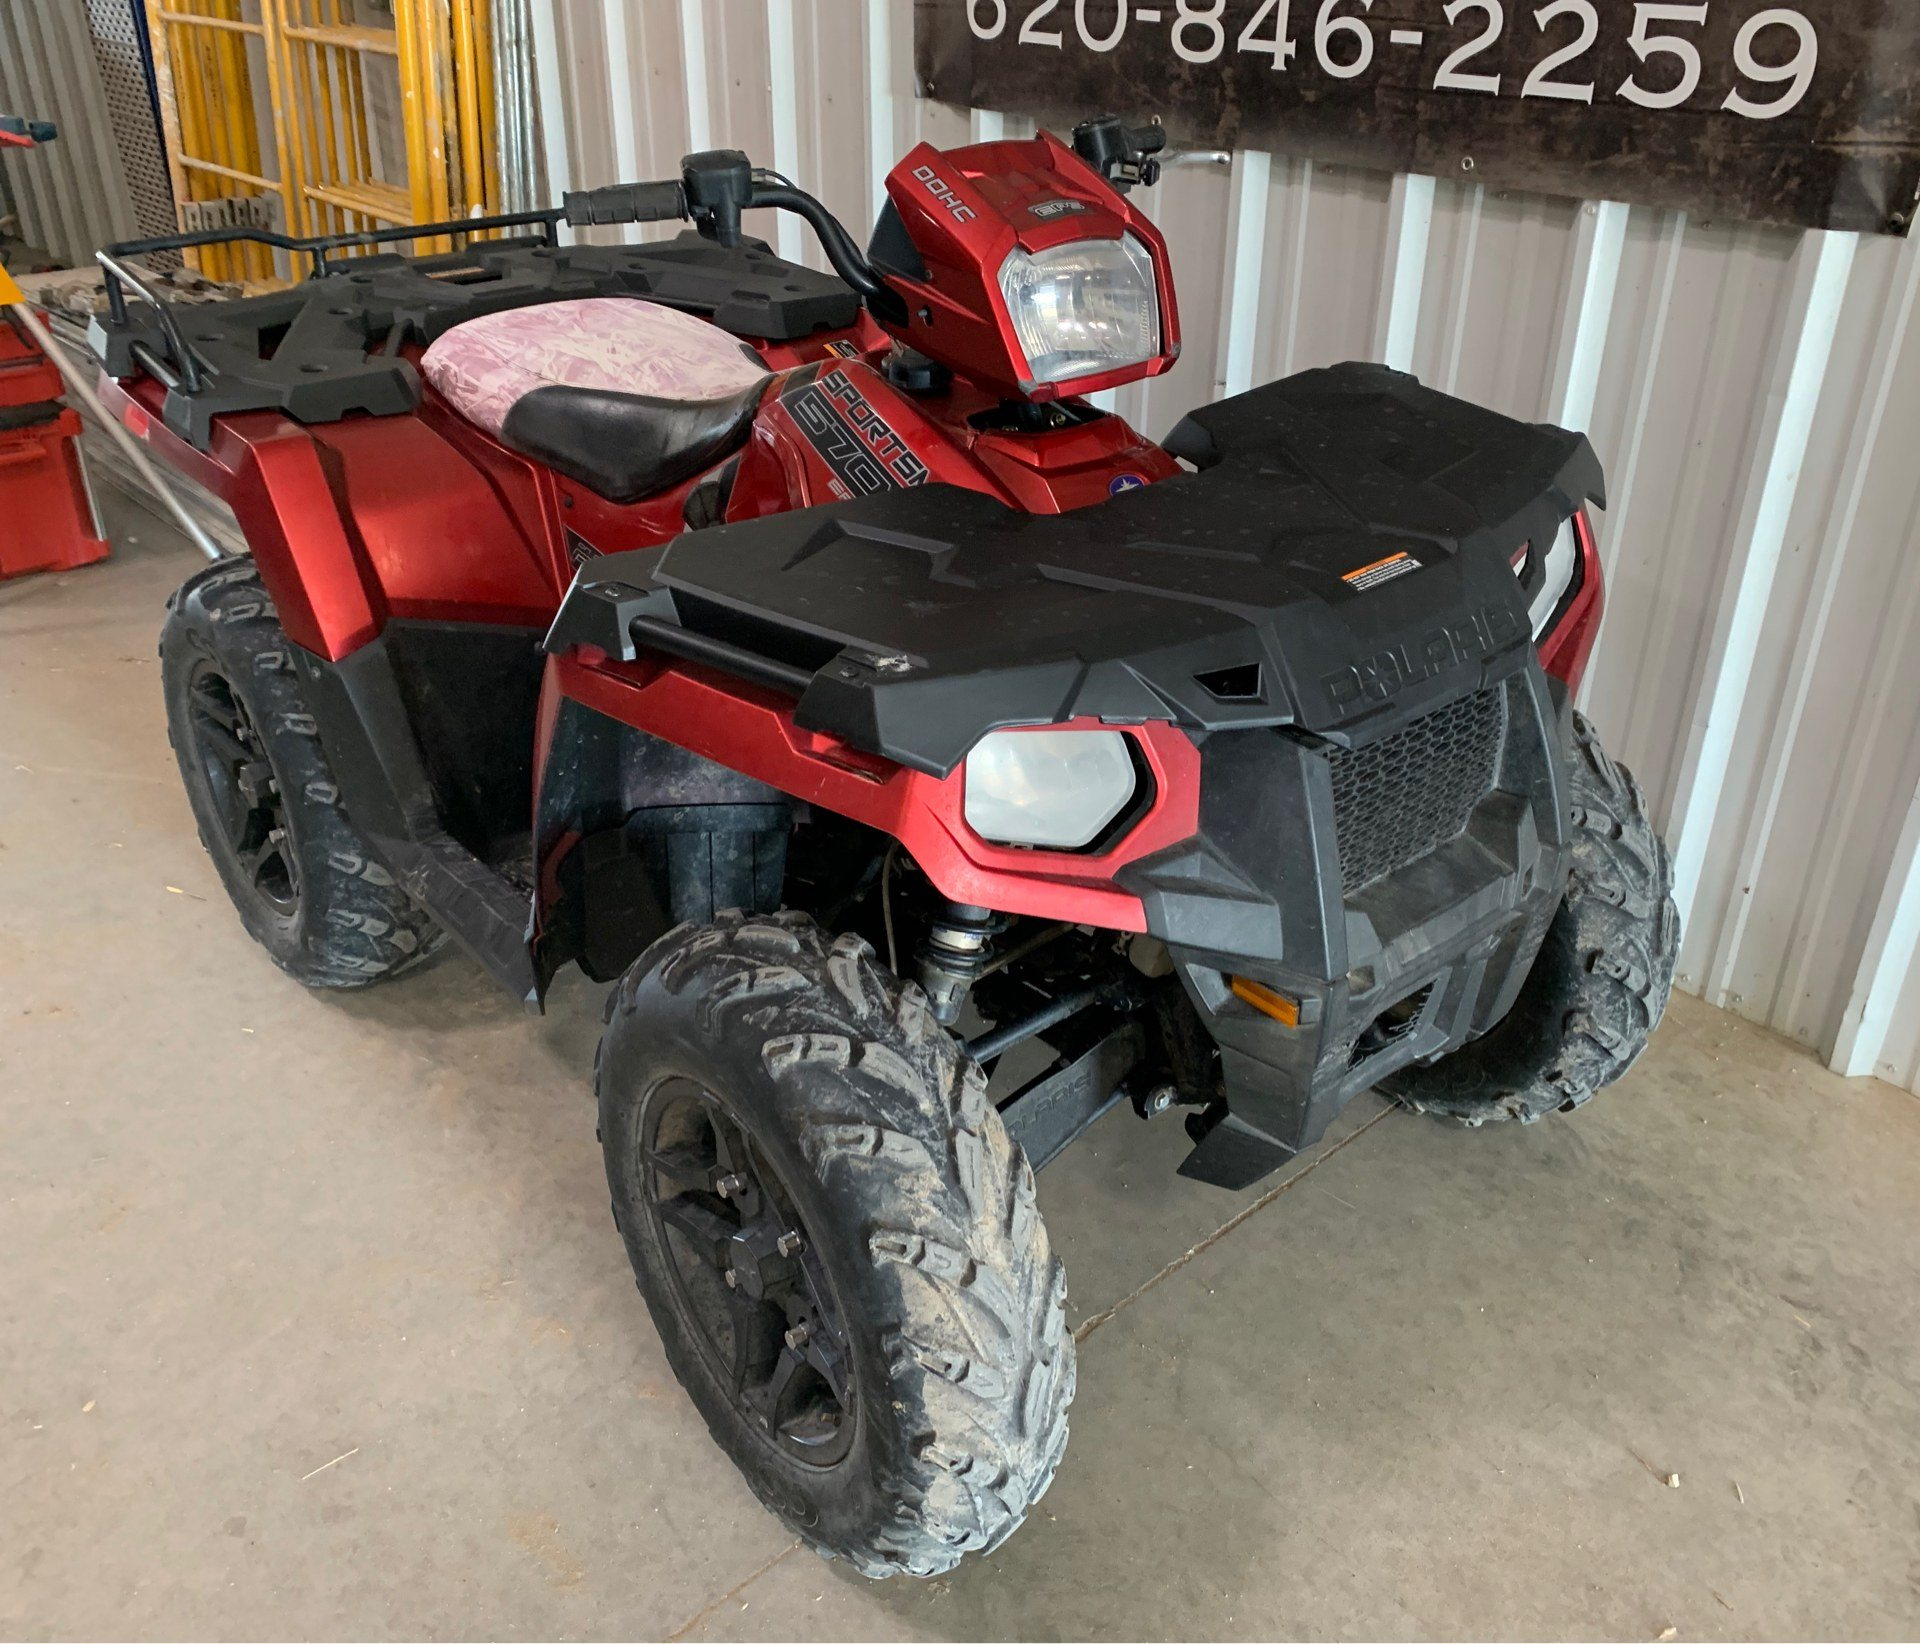 2018 Polaris Sportsman 570 SP in Montezuma, Kansas - Photo 8